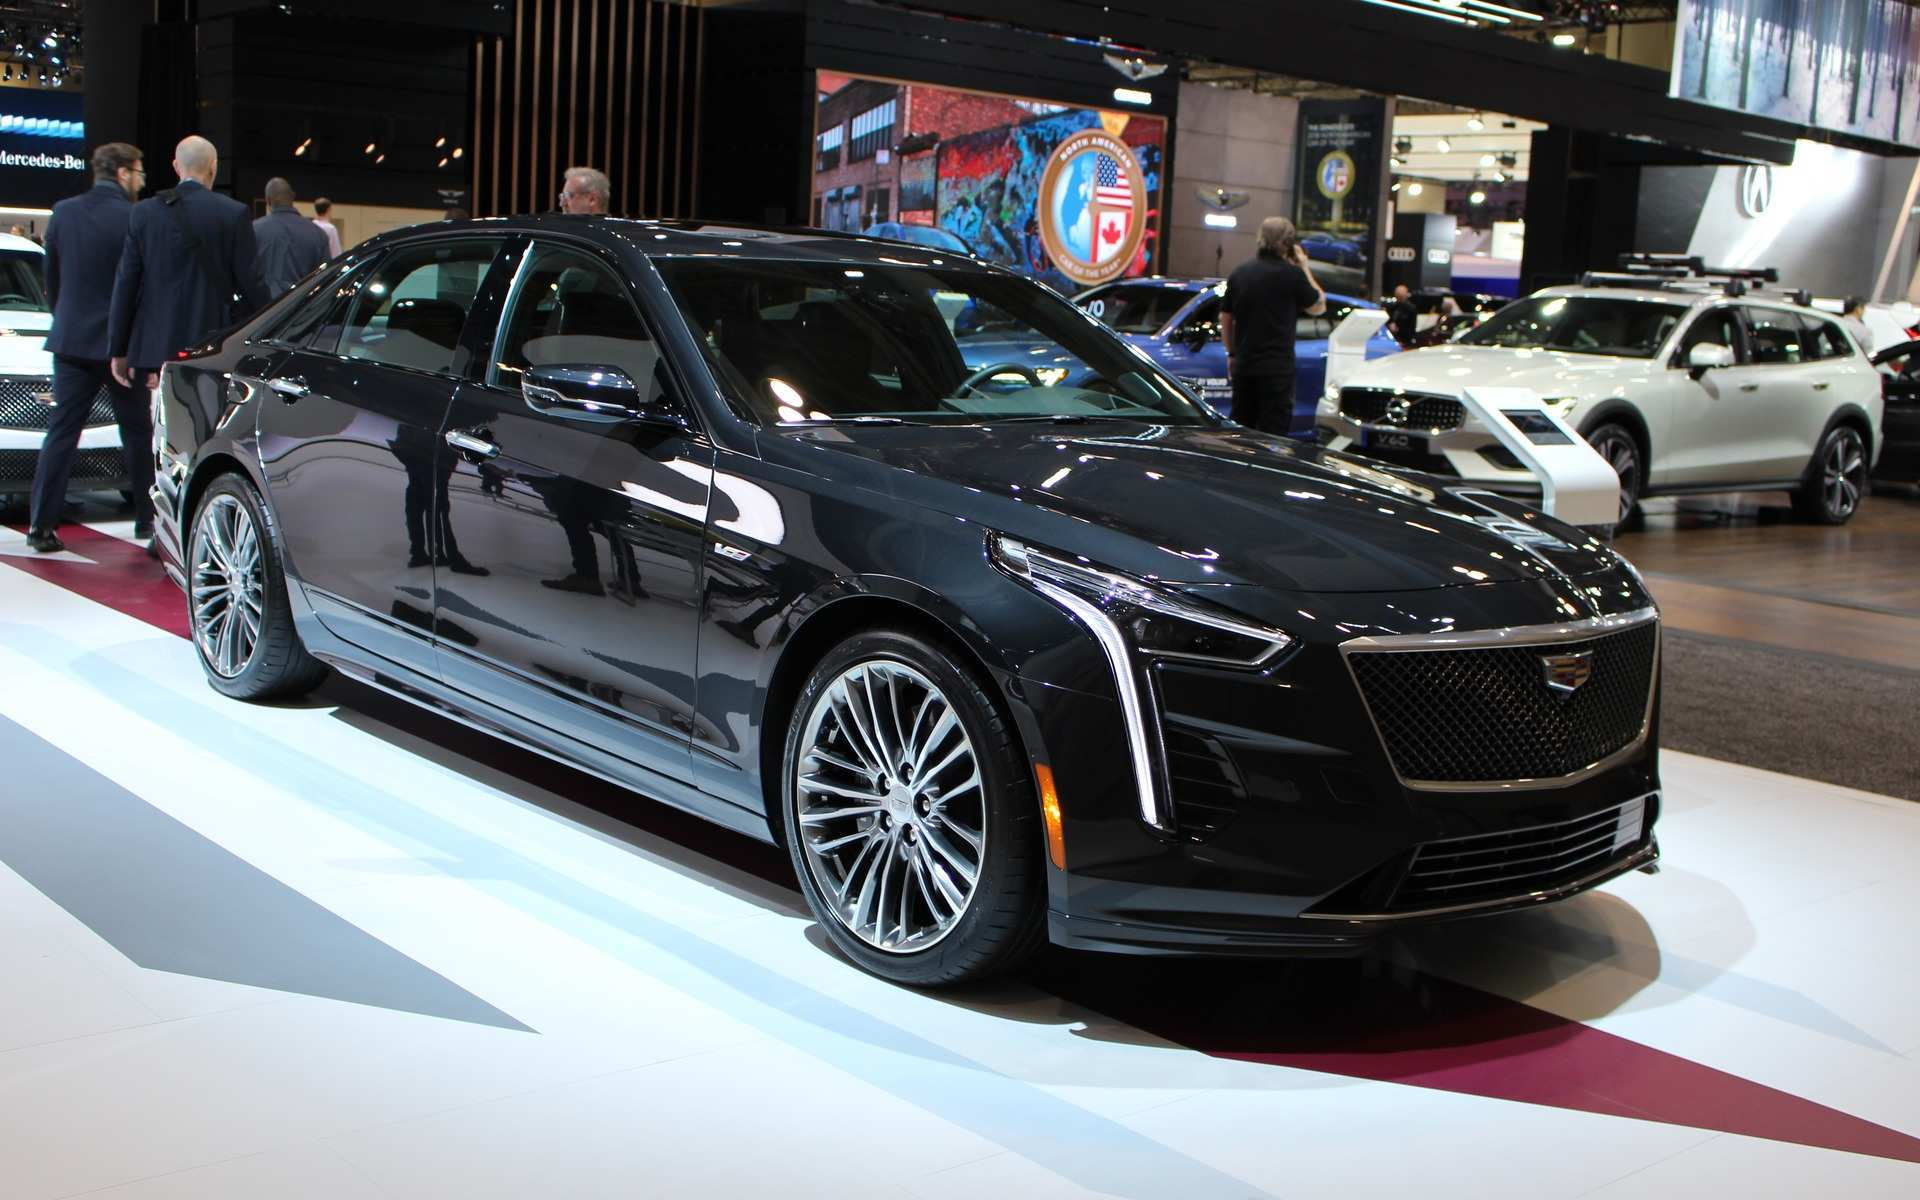 93 New 2020 Cadillac Ct6 V8 Pictures with 2020 Cadillac Ct6 V8